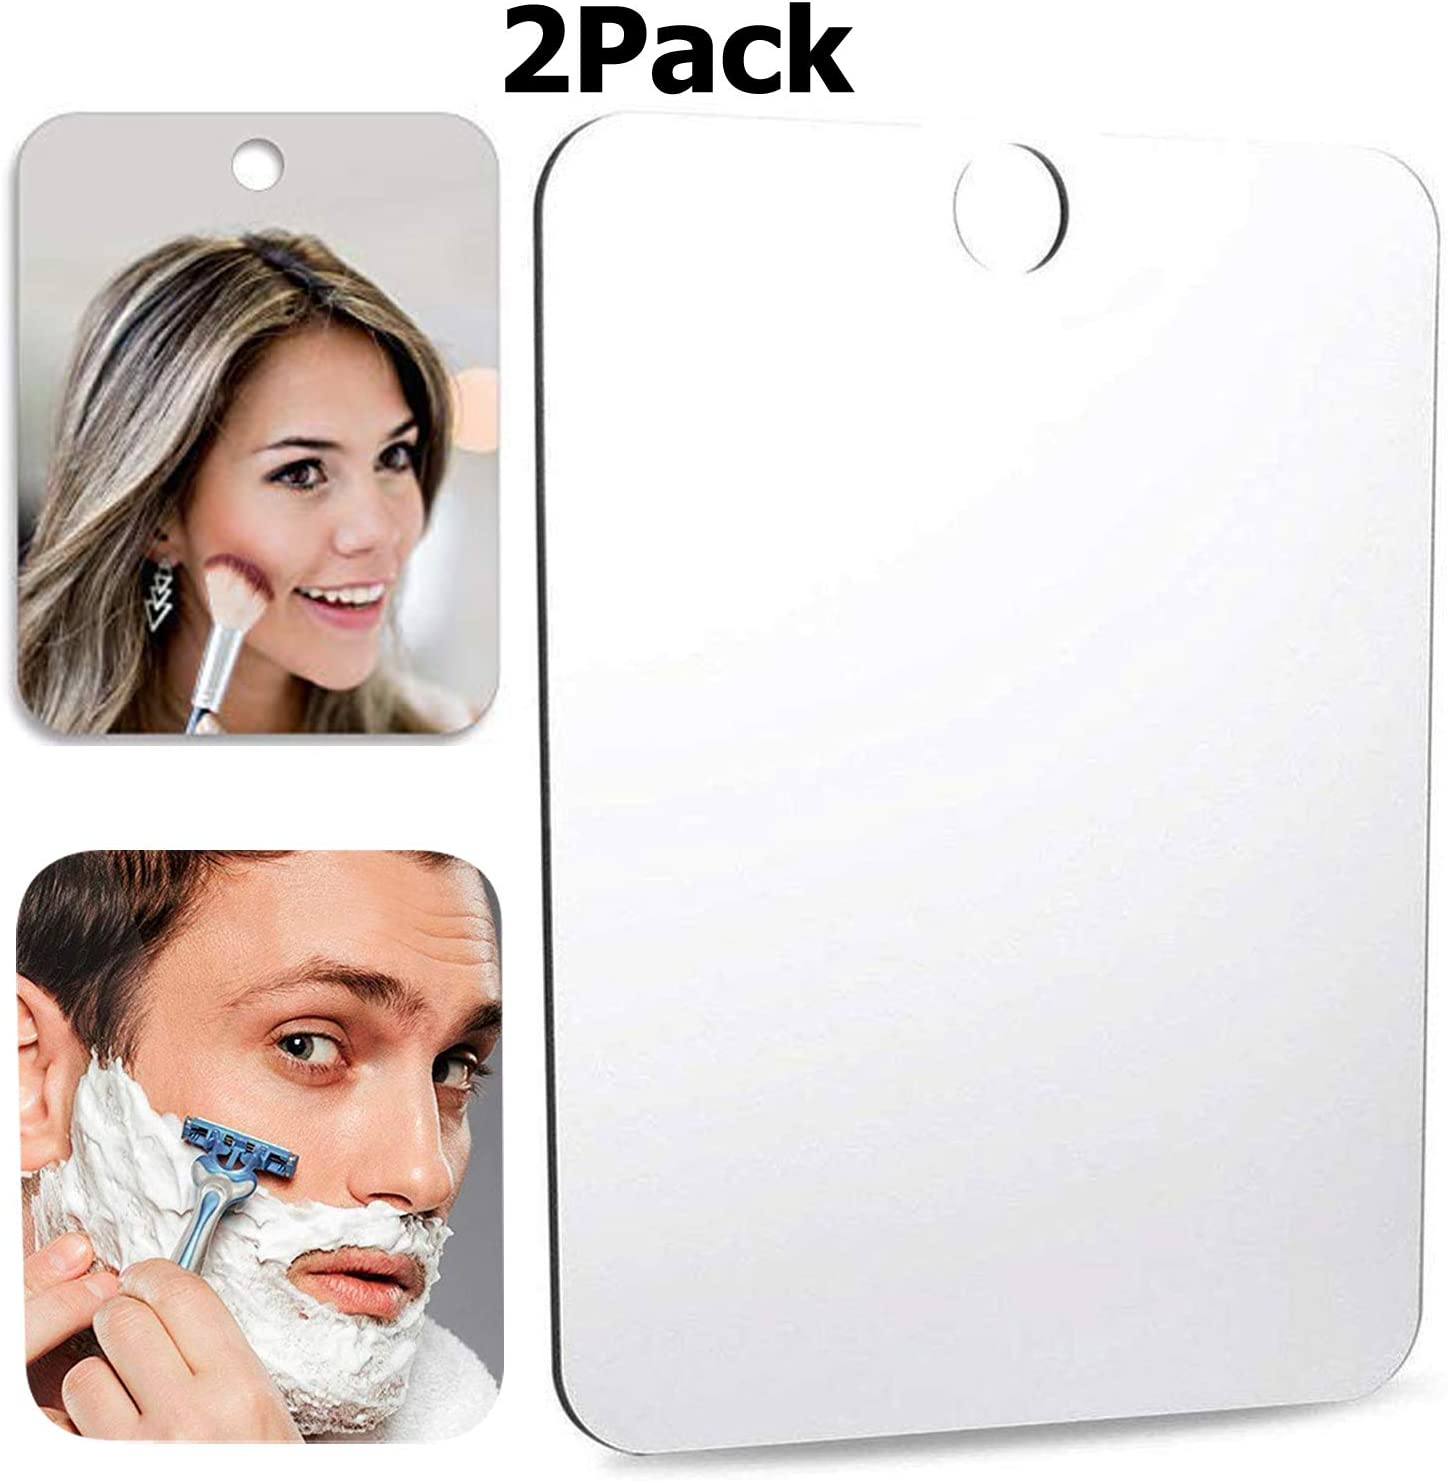 Anit-Fog Shower 2 XoYo-2PACK Fogless Shower Mirror Includes 2 Adhesive Hooks